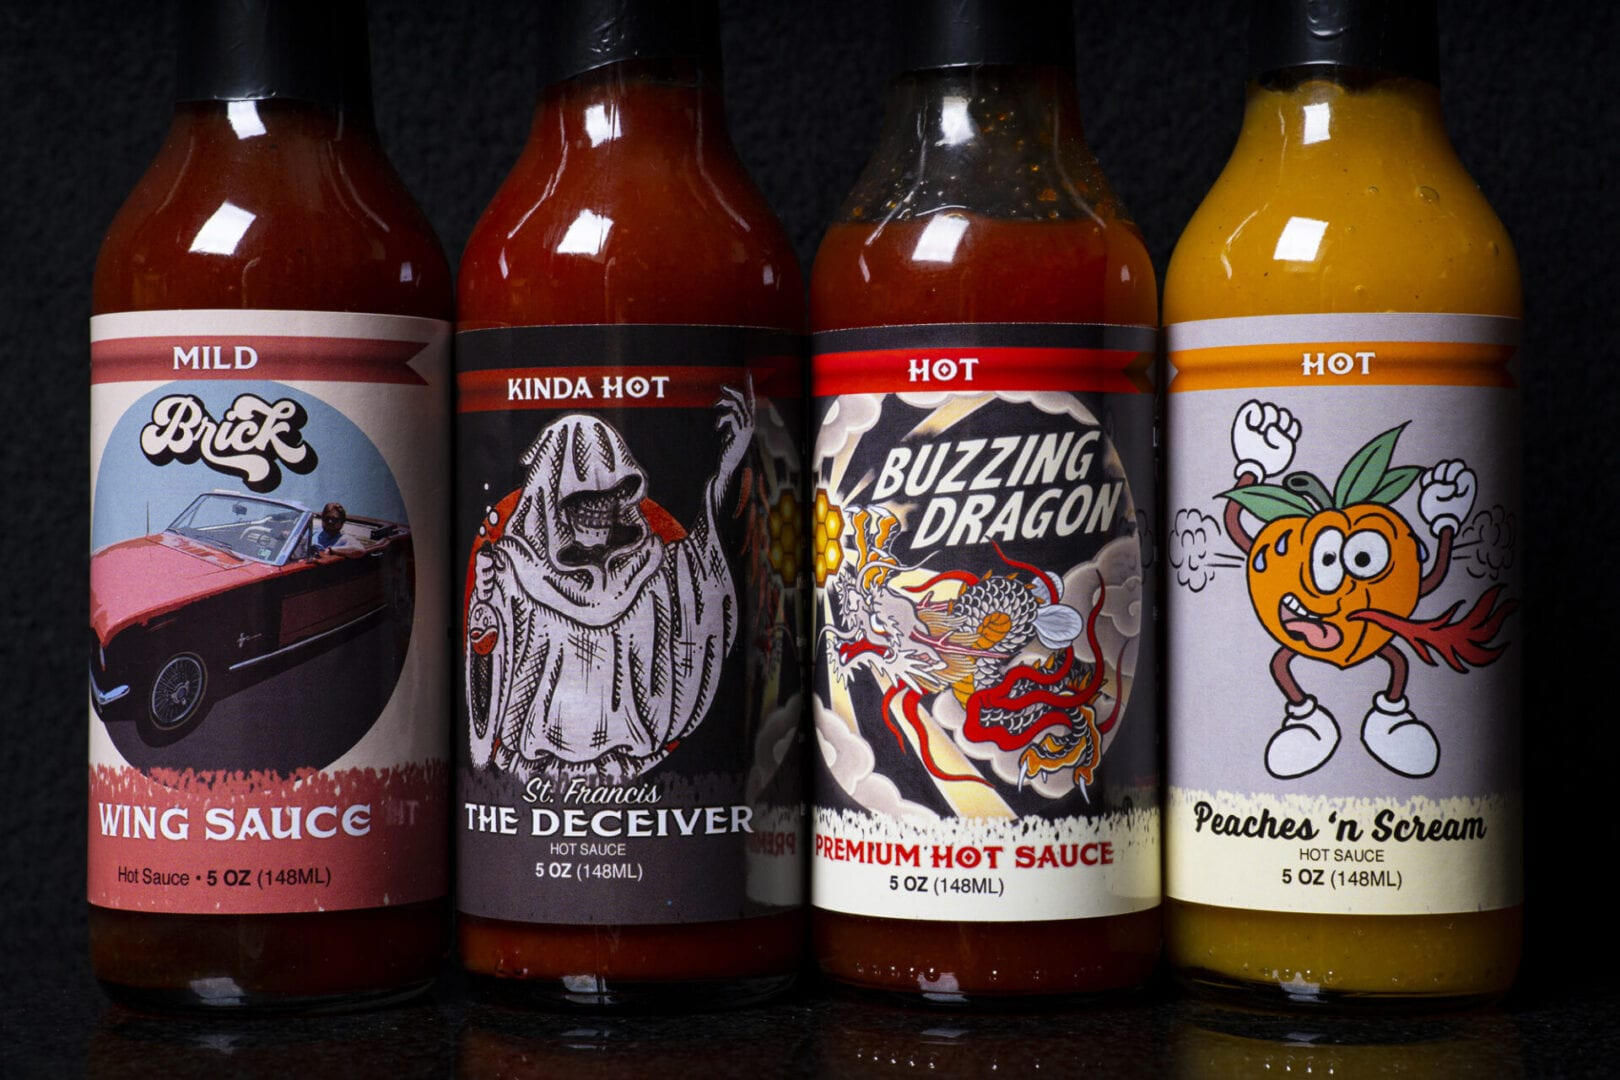 Ledwon's Hot Sauce 4-packl